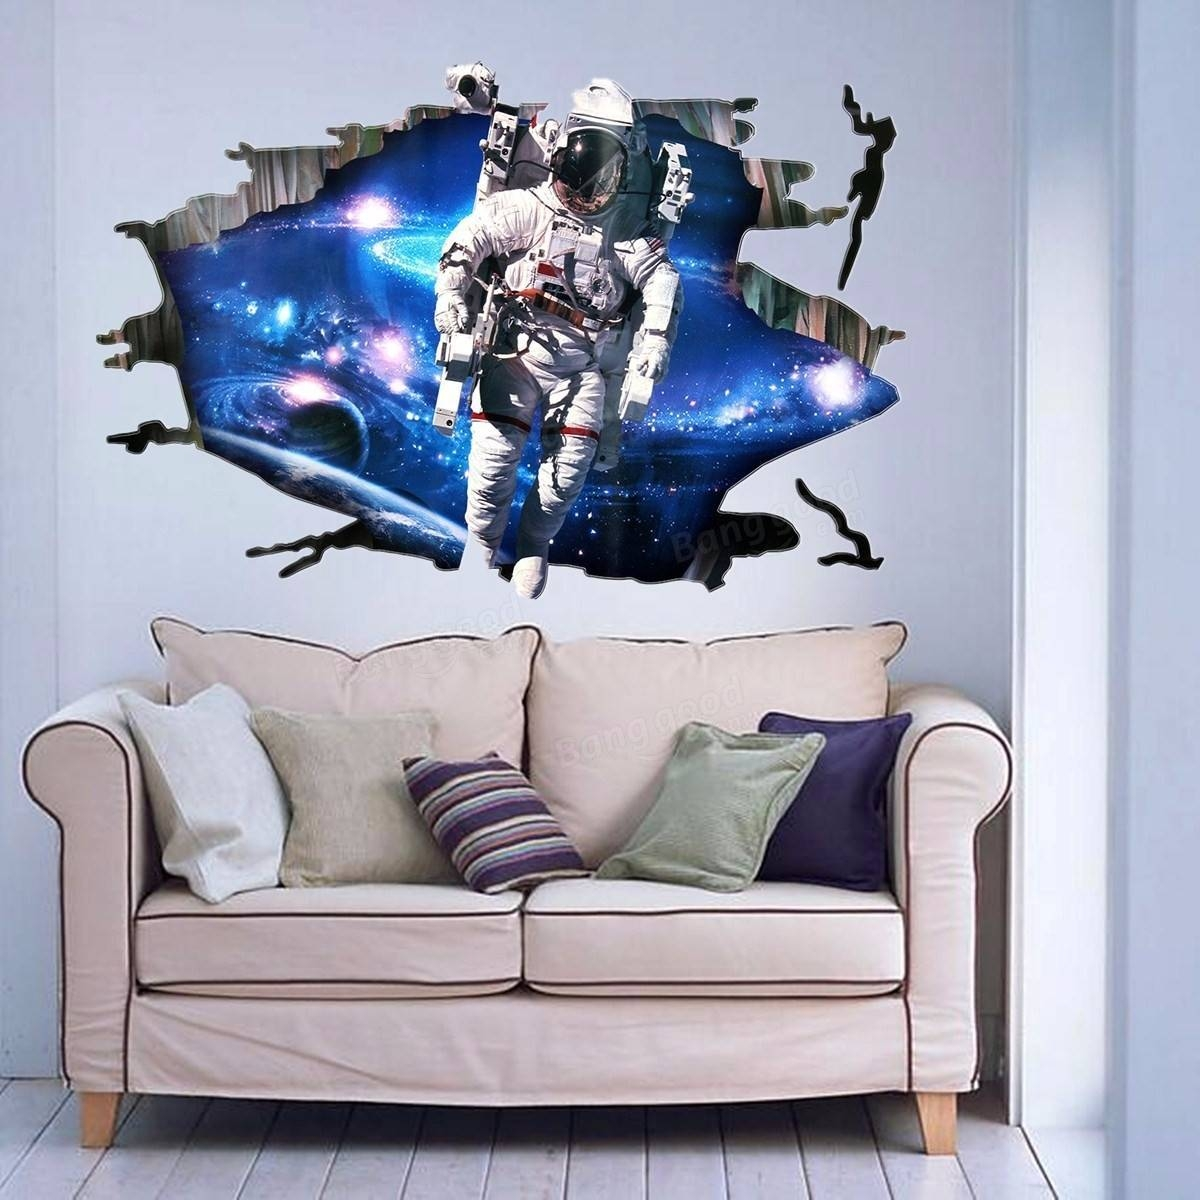 3D Wall Stickers Wallpaper Space Astronauts Decor Kids Room Decal Inside Current Astronaut 3D Wall Art (Gallery 7 of 20)